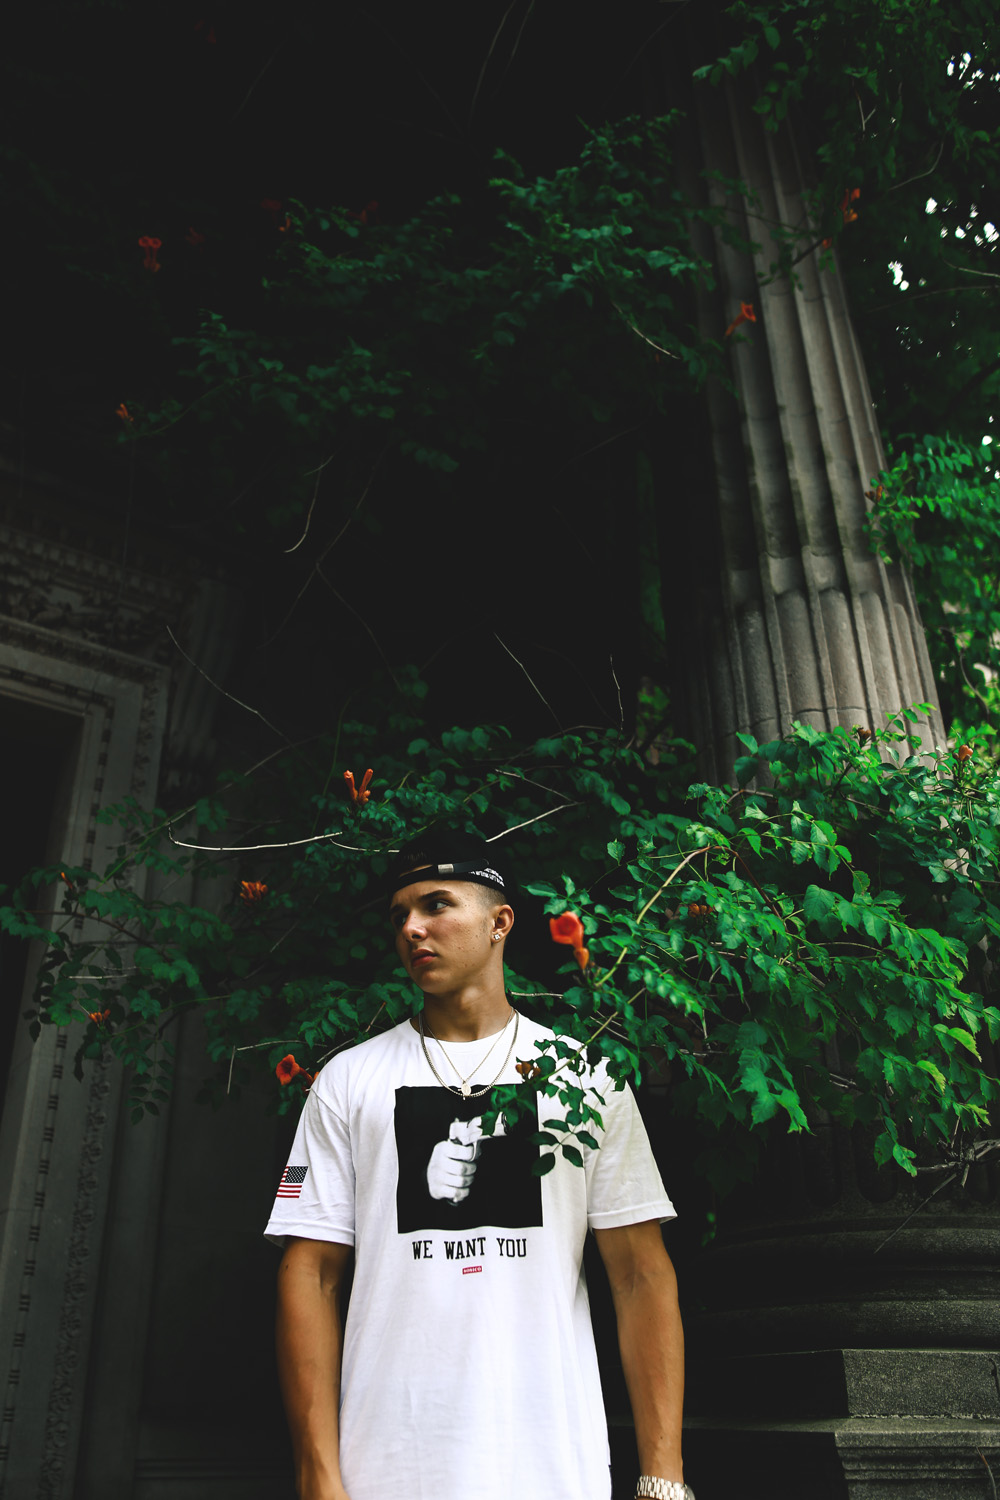 Old architecture. Greens with bright highlight colors in the form of flowers. Dope Clothing. Skrt.